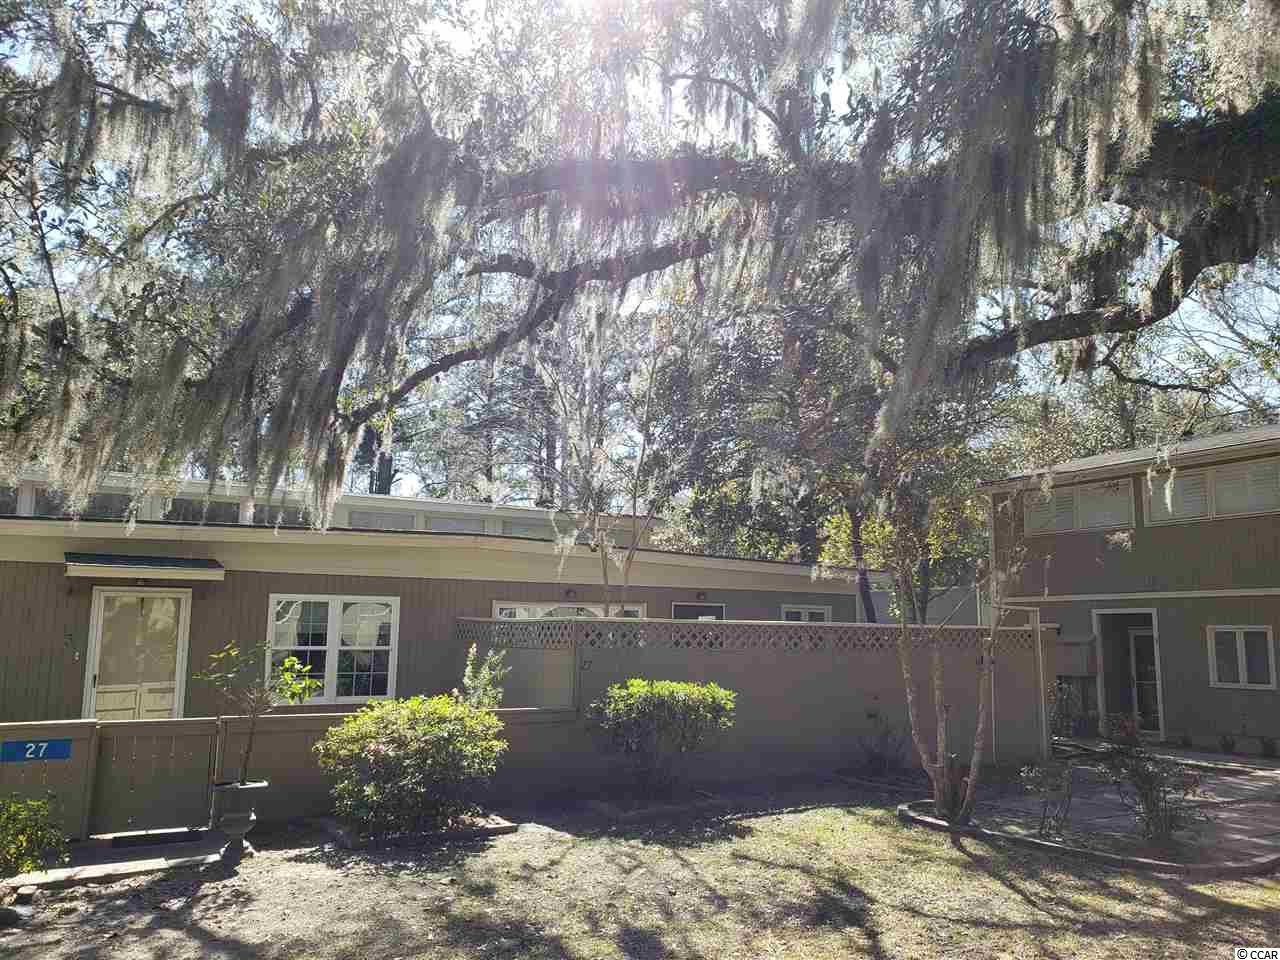 This 2 bed, 1 bath condo is located in the amazing and quiet Wedgefield area and is close to historic Georgetown!! This unit gets plenty of natural light which makes it feel open and light. The kitchen has plenty of room for you and your family and has been updated. As you walk into the living room you will see high ceilings which gives the space a great open feel. The bedrooms are large and the bathroom contains a shower/tub combo. This unit is very affordable and is ready for you. With a front court yard for pets or privacy, this unit has great outdoor space for you to use!